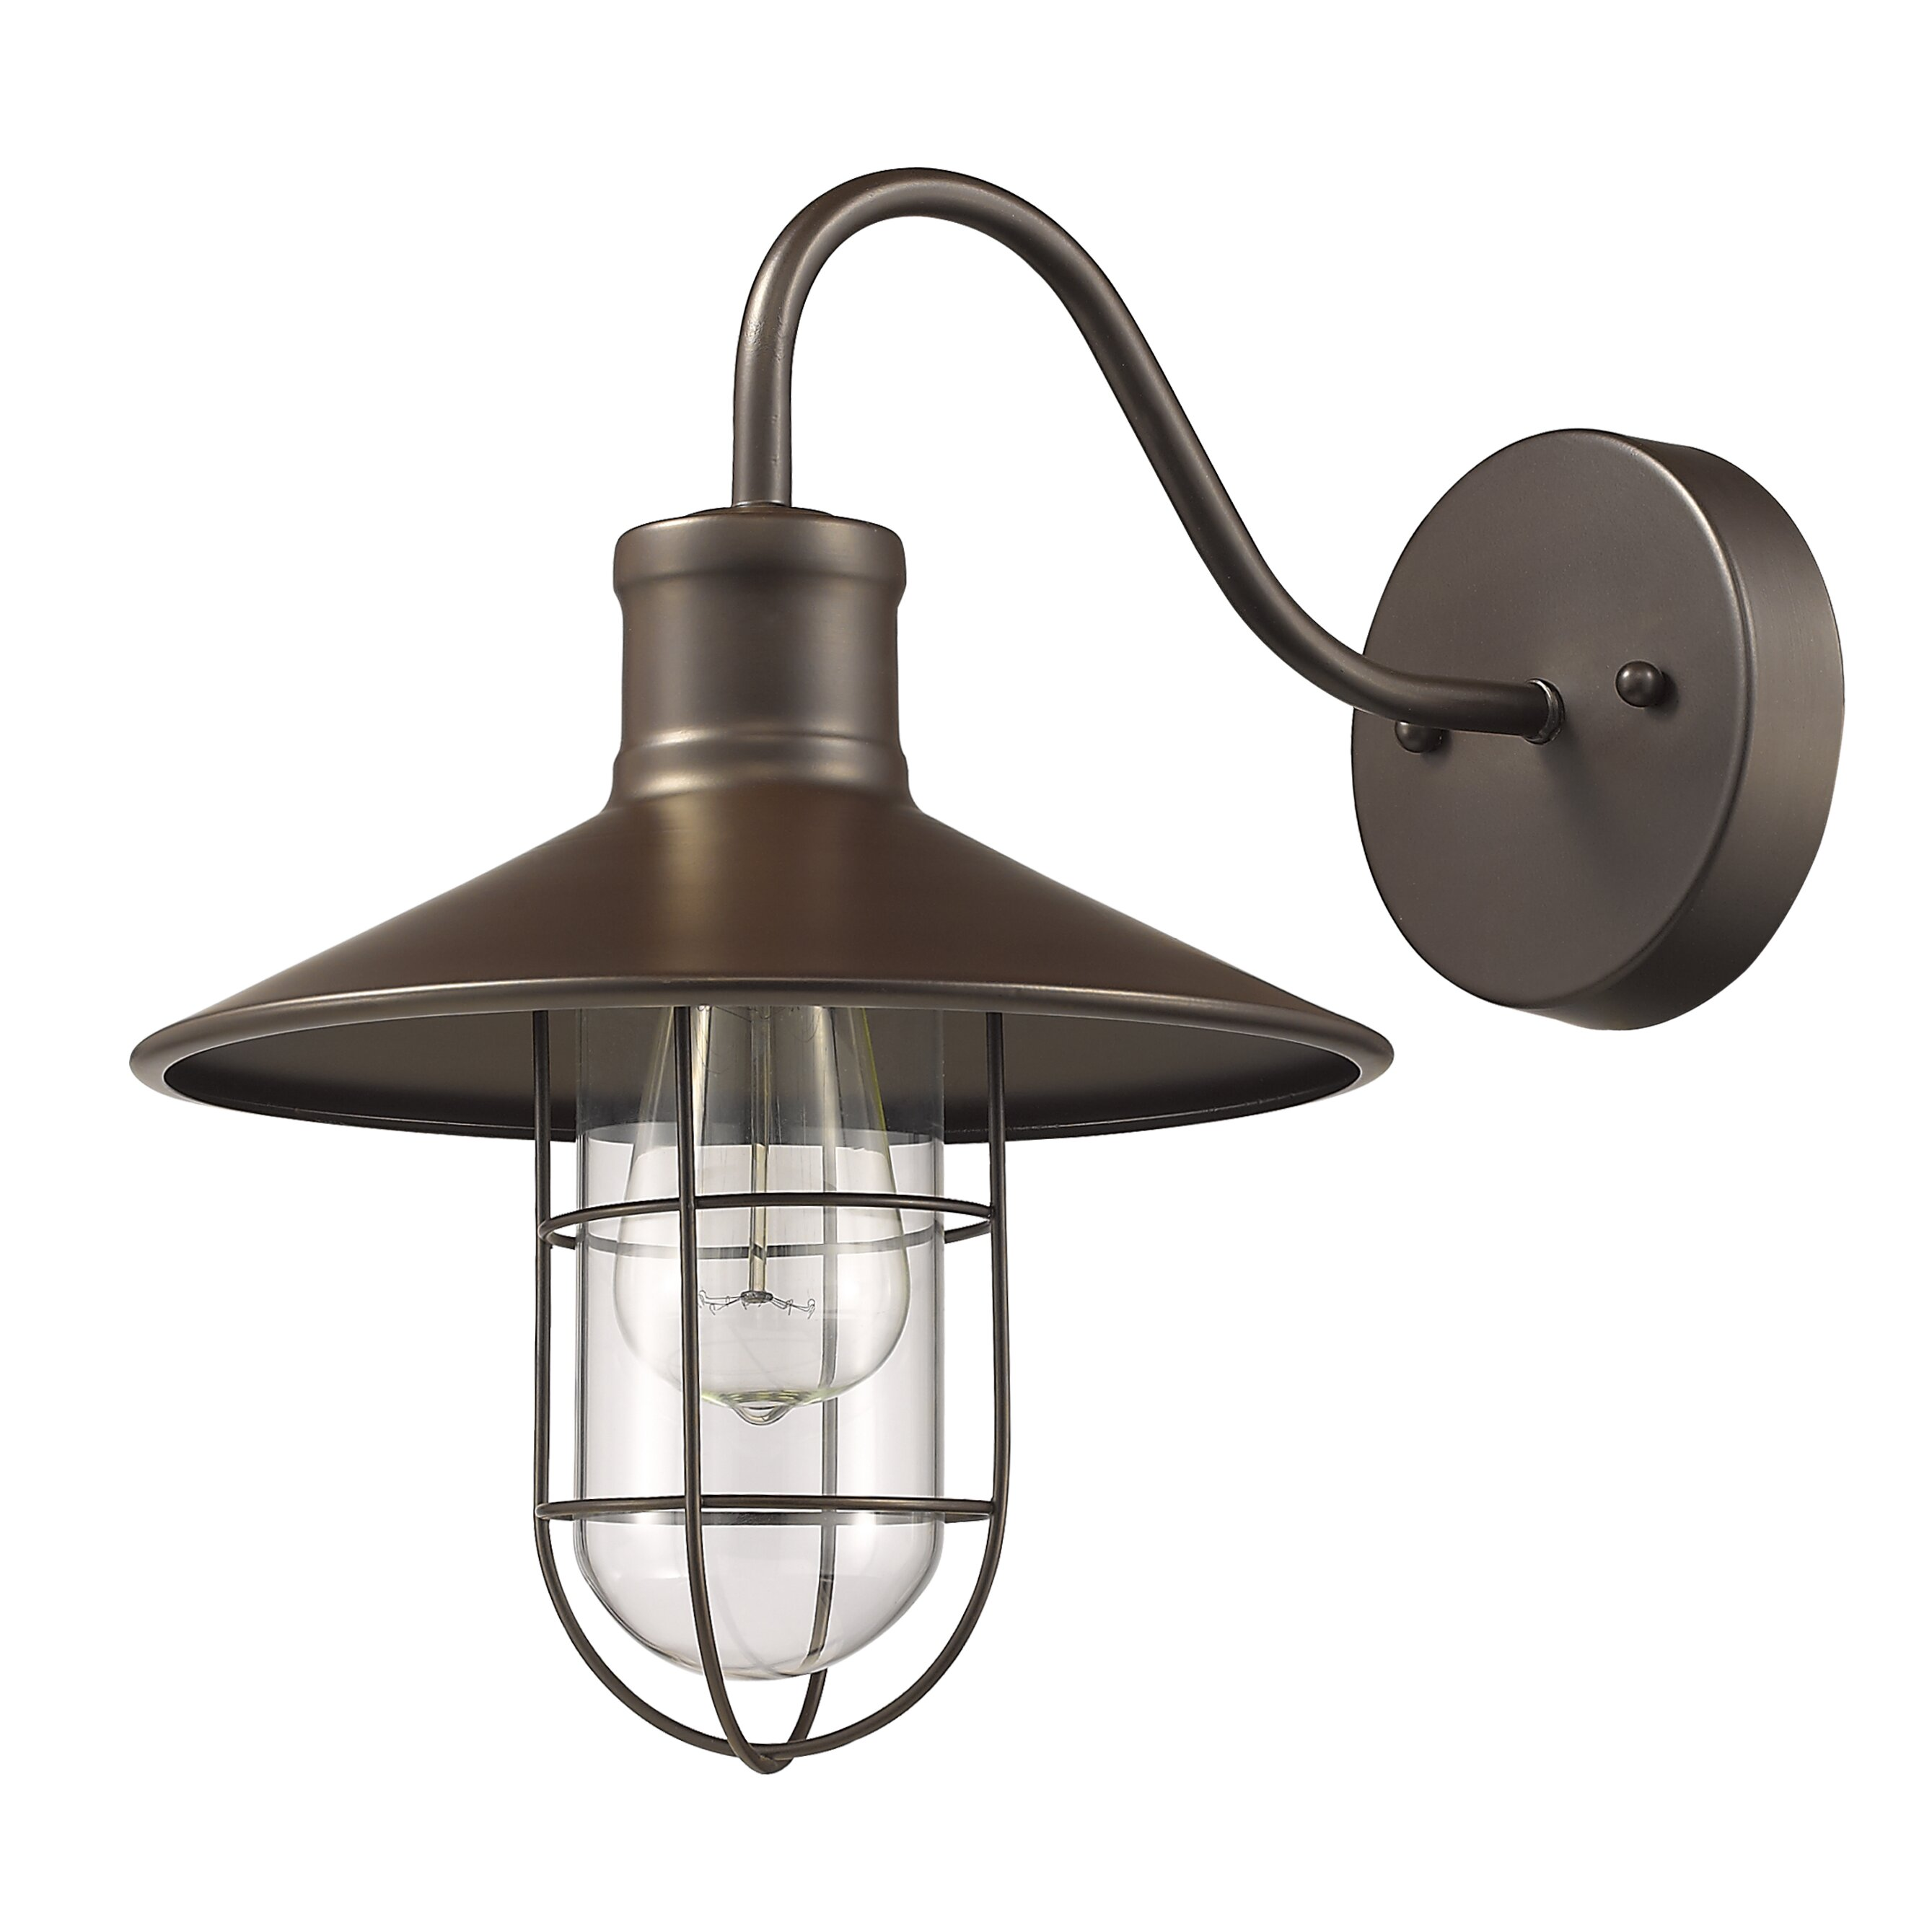 Laurel Foundry Modern Farmhouse Bouvet 1 Light Wall Sconce & Reviews Wayfair